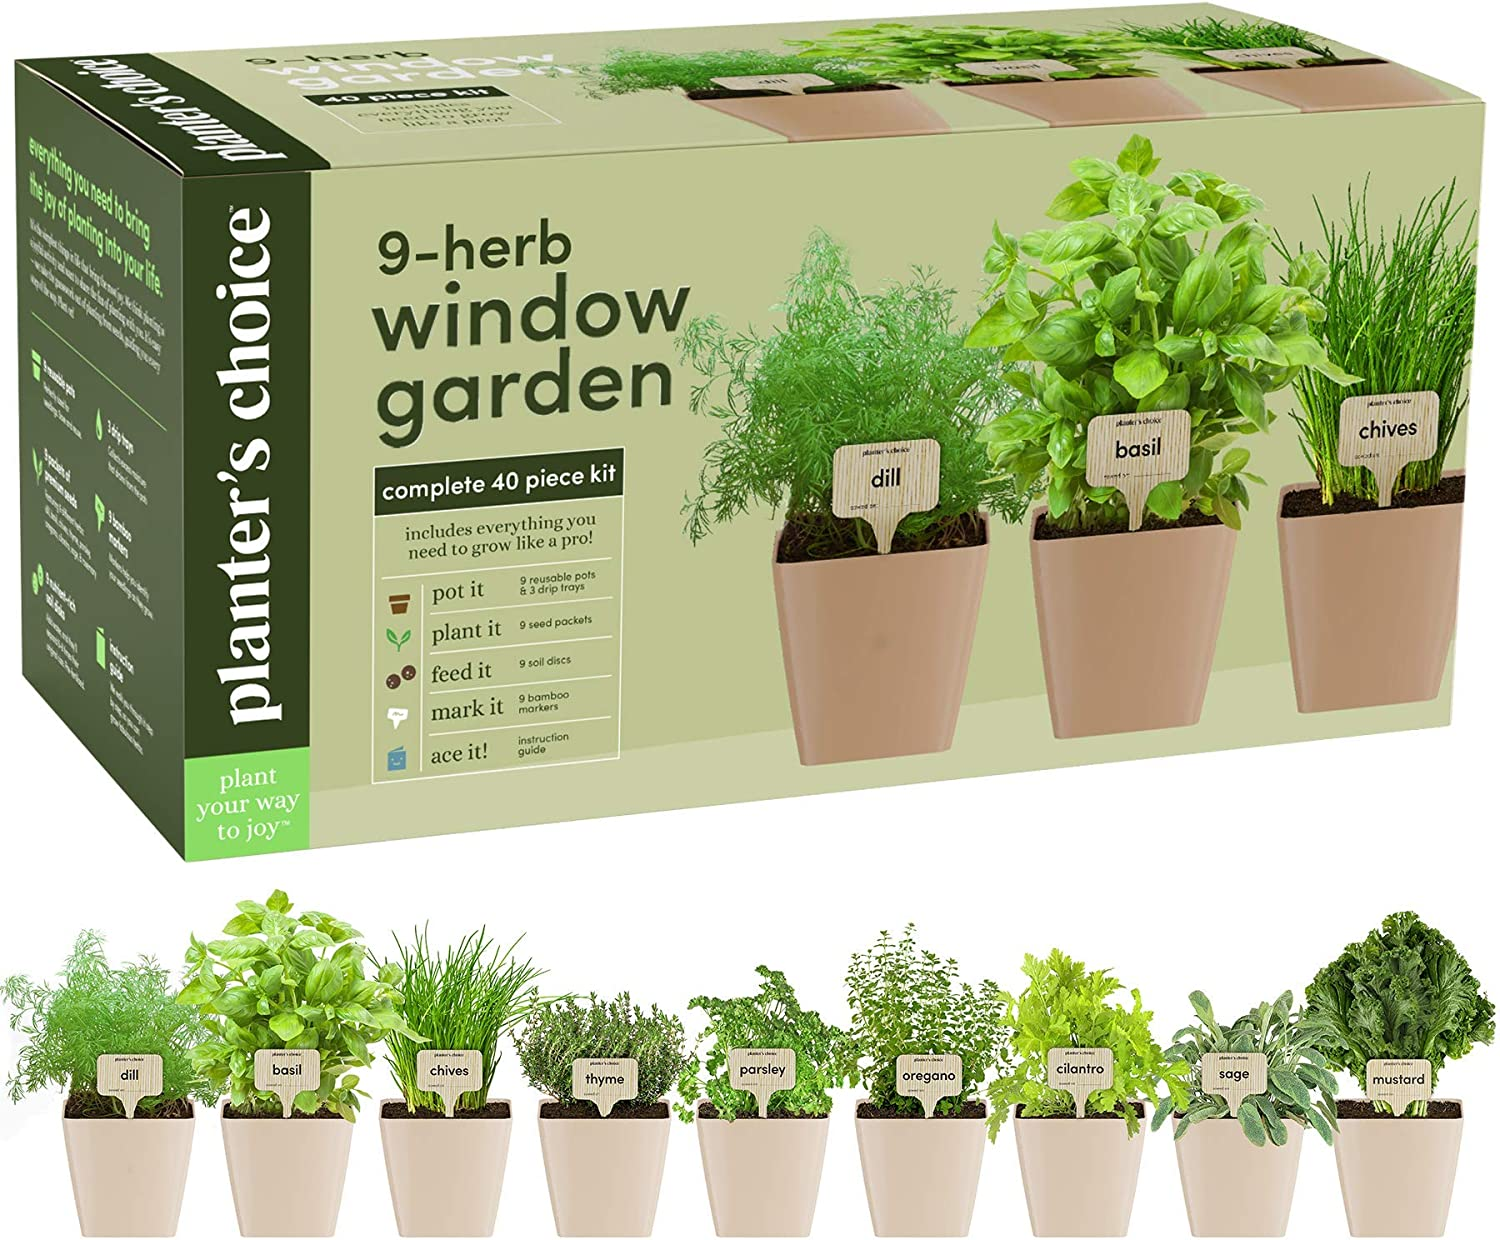 Amazon Com 9 Herb Window Garden Indoor Organic Herb Growing Kit Kitchen Windowsill Starter Kit Easily Grow 9 Herbs Plants From Seeds With Comprehensive Guide Unique Gardening Gifts For,Forever Rose In Glass Dome